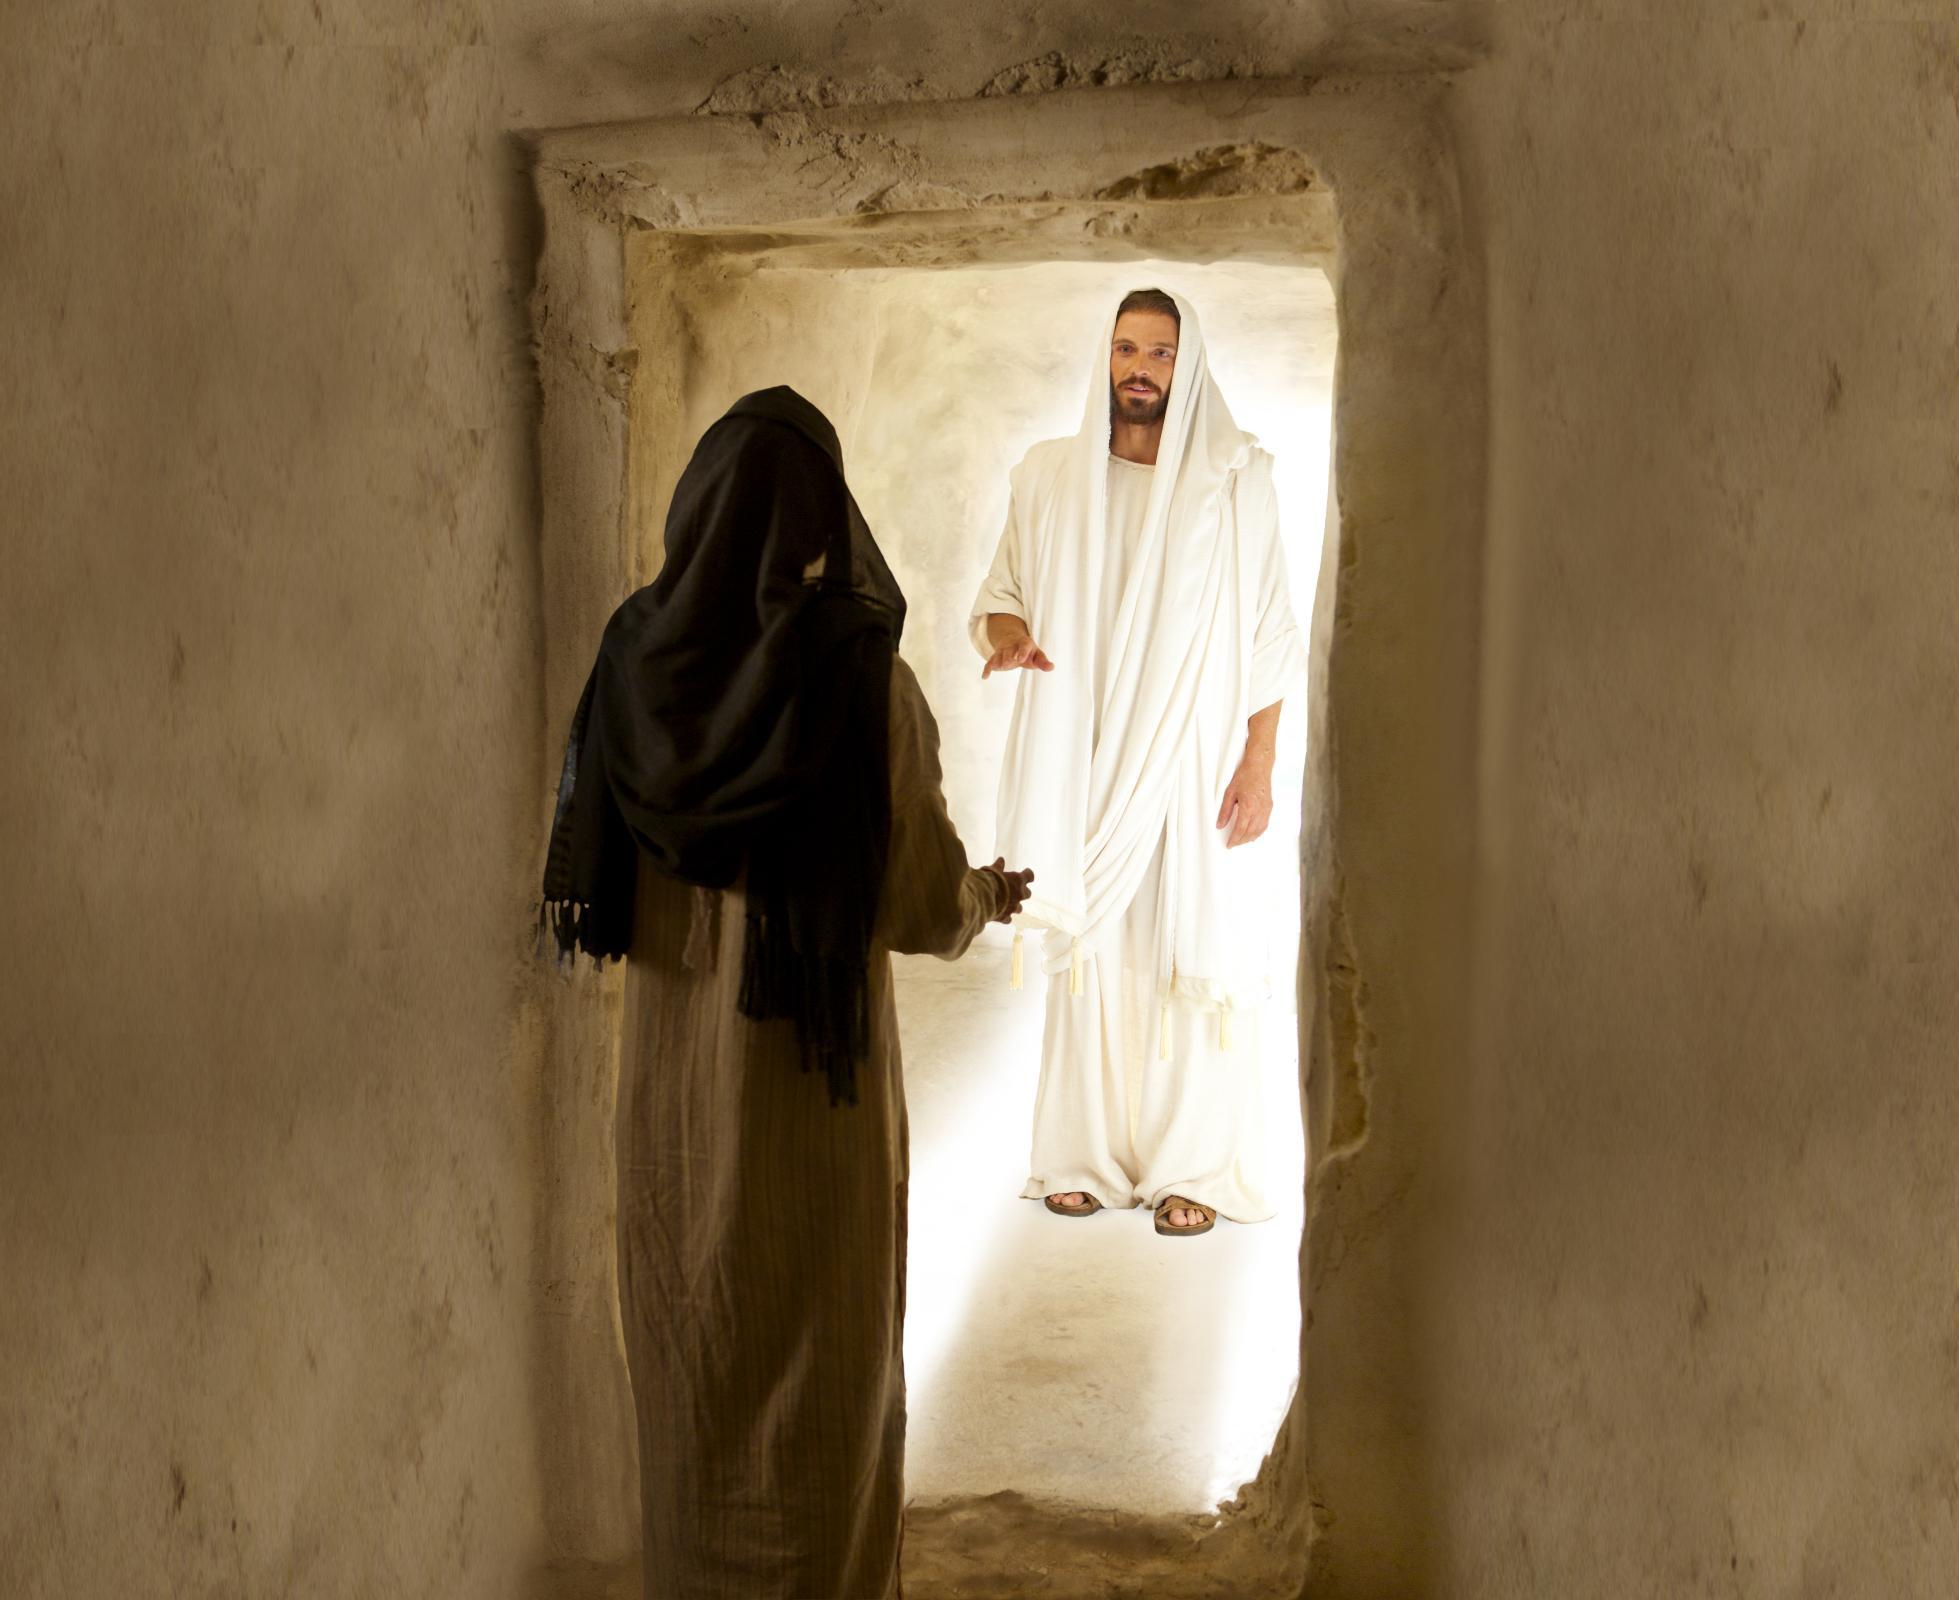 easter-pictures-resurrection-mary-magdalene-1242543-wallpaper ...